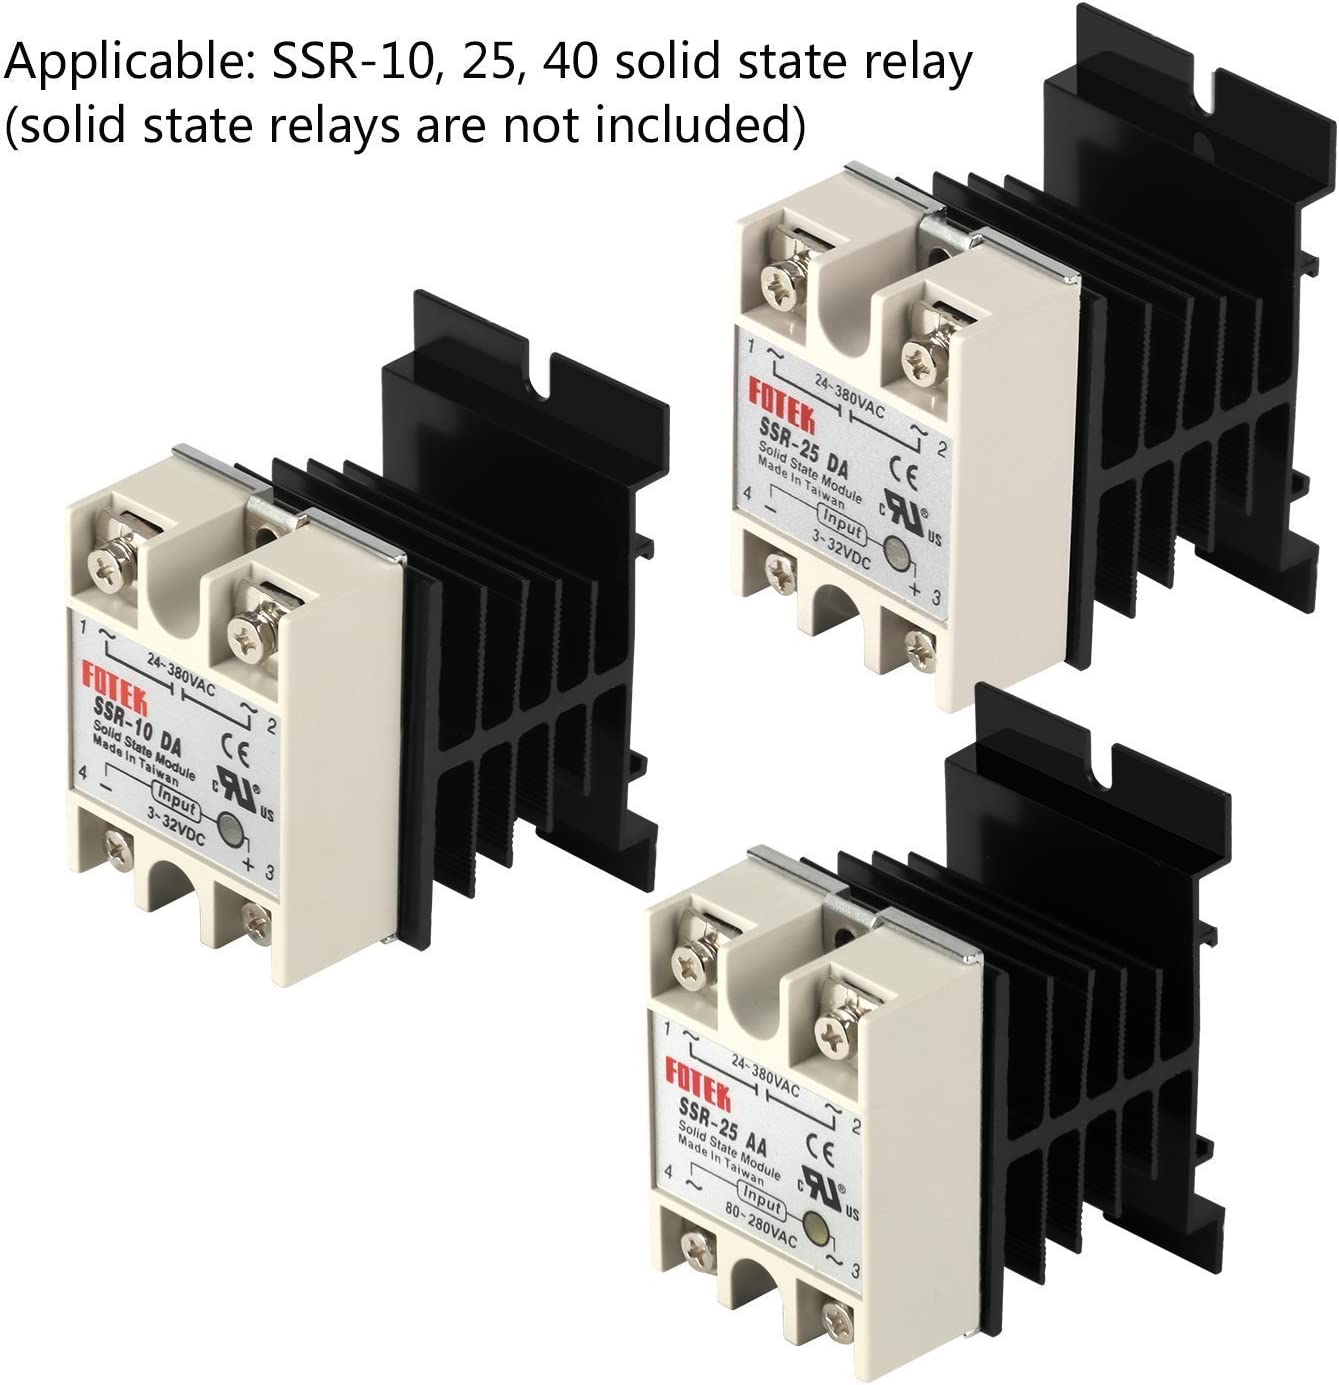 SODIAL Solid State Relay Heat Sink,3PCS Aluminum Heatsink PID Temperature Controller Heat Sink for Solid State Relay and SSR Radiator Module Black for SSR-10,25,40A